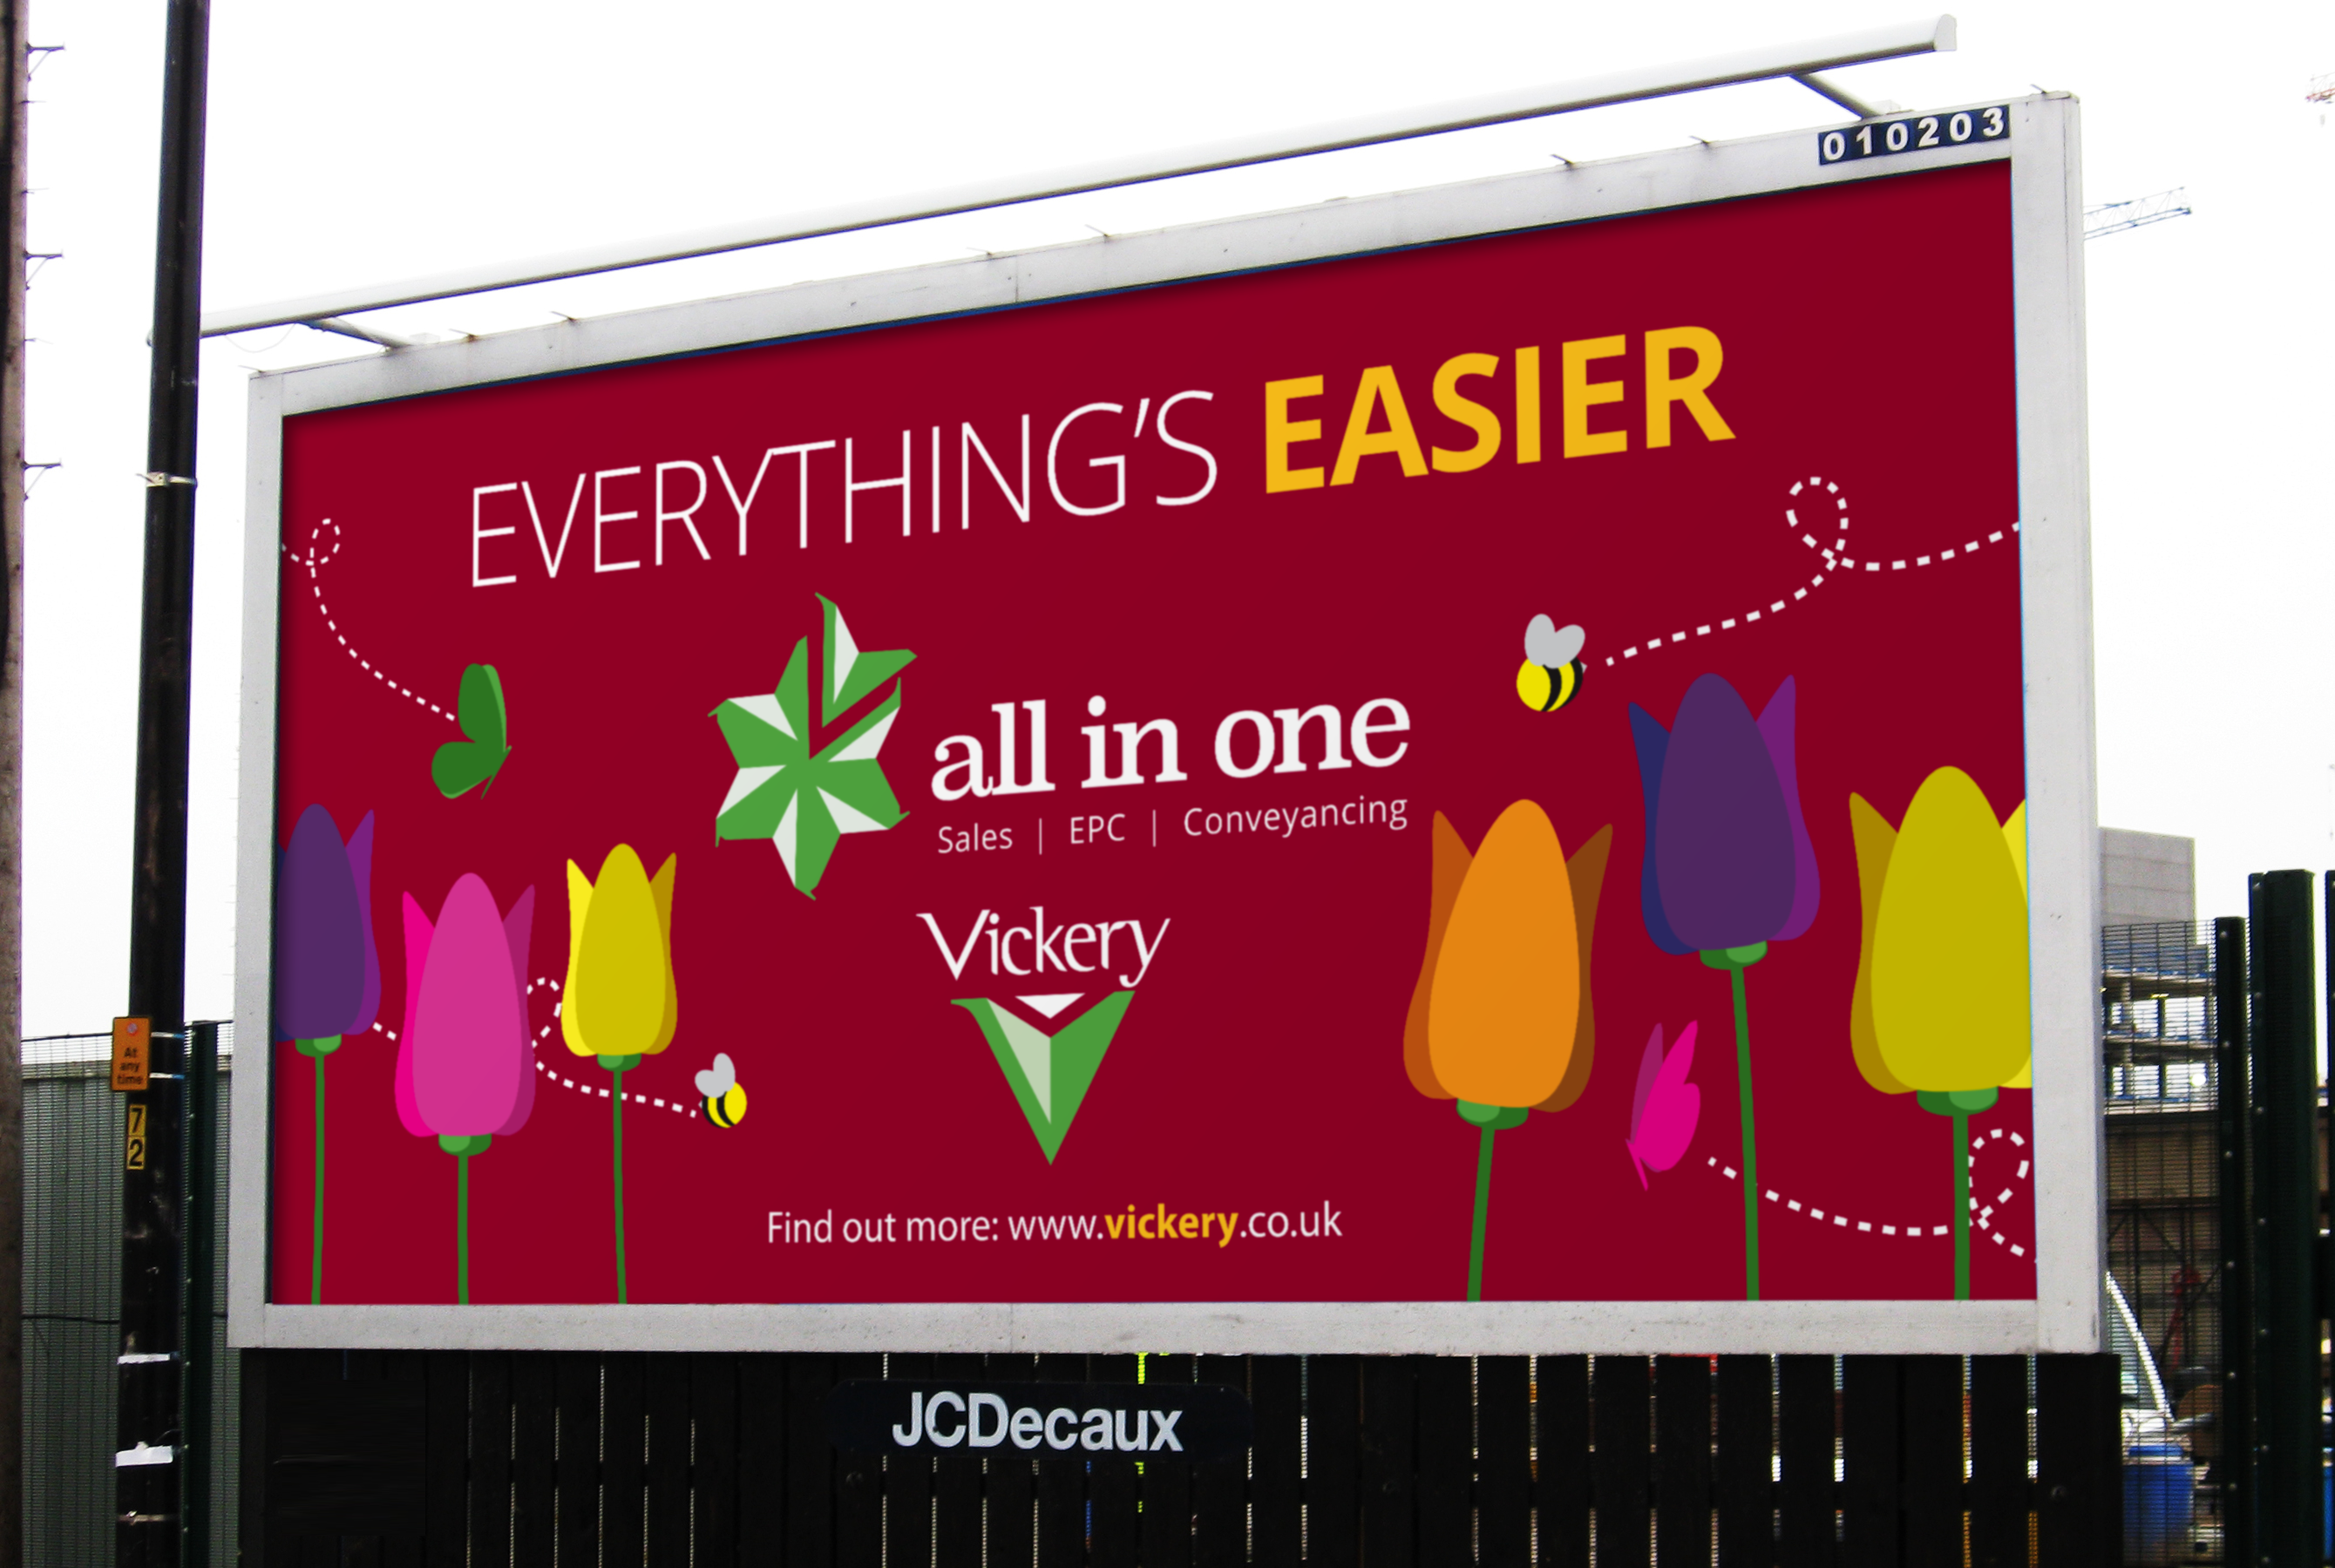 Billboard (displayed in Fleet) promoting the All in One Service from Vickery